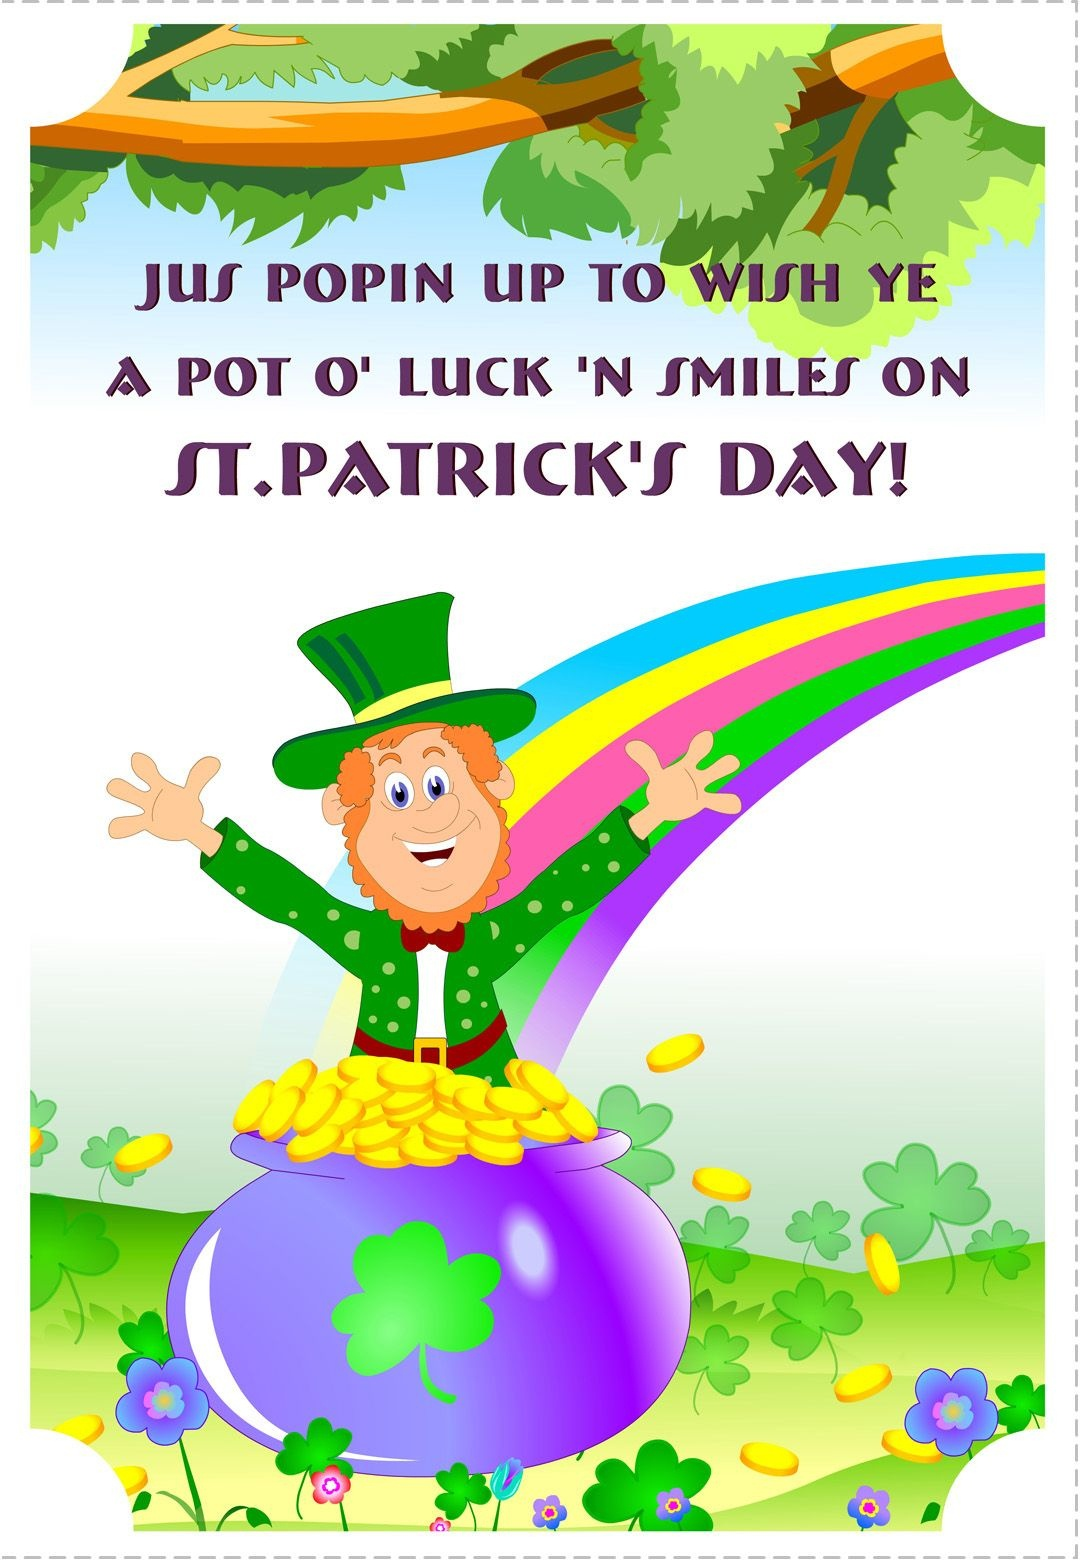 Free Printable A Pot Of Luck St Patrick's Greeting Card   Printable - Free Printable St Patrick's Day Card